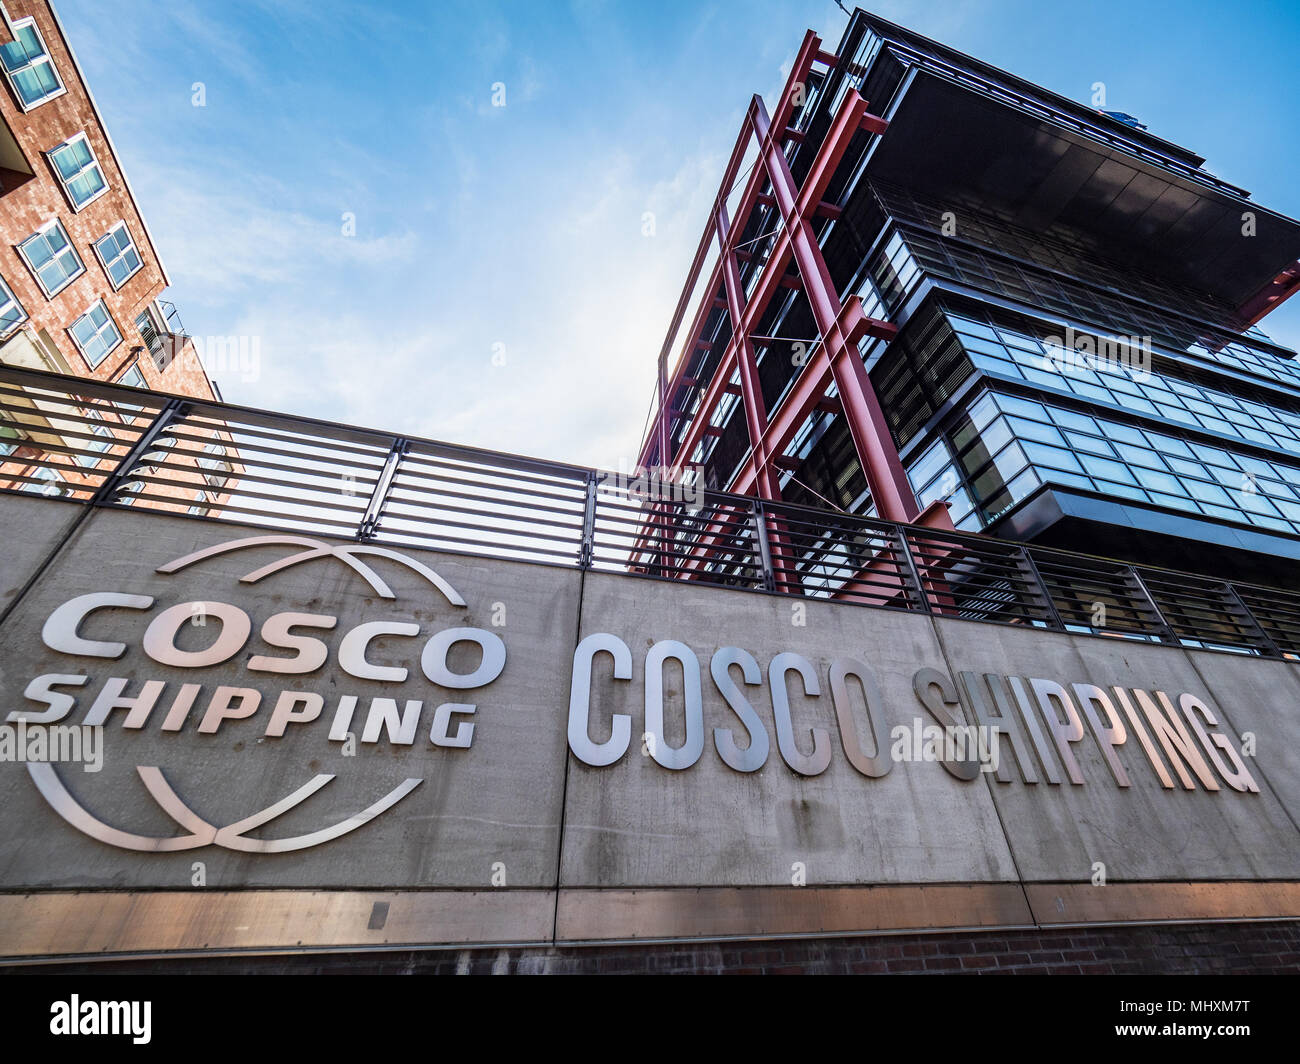 Shipping Company Stock Photos & Shipping Company Stock